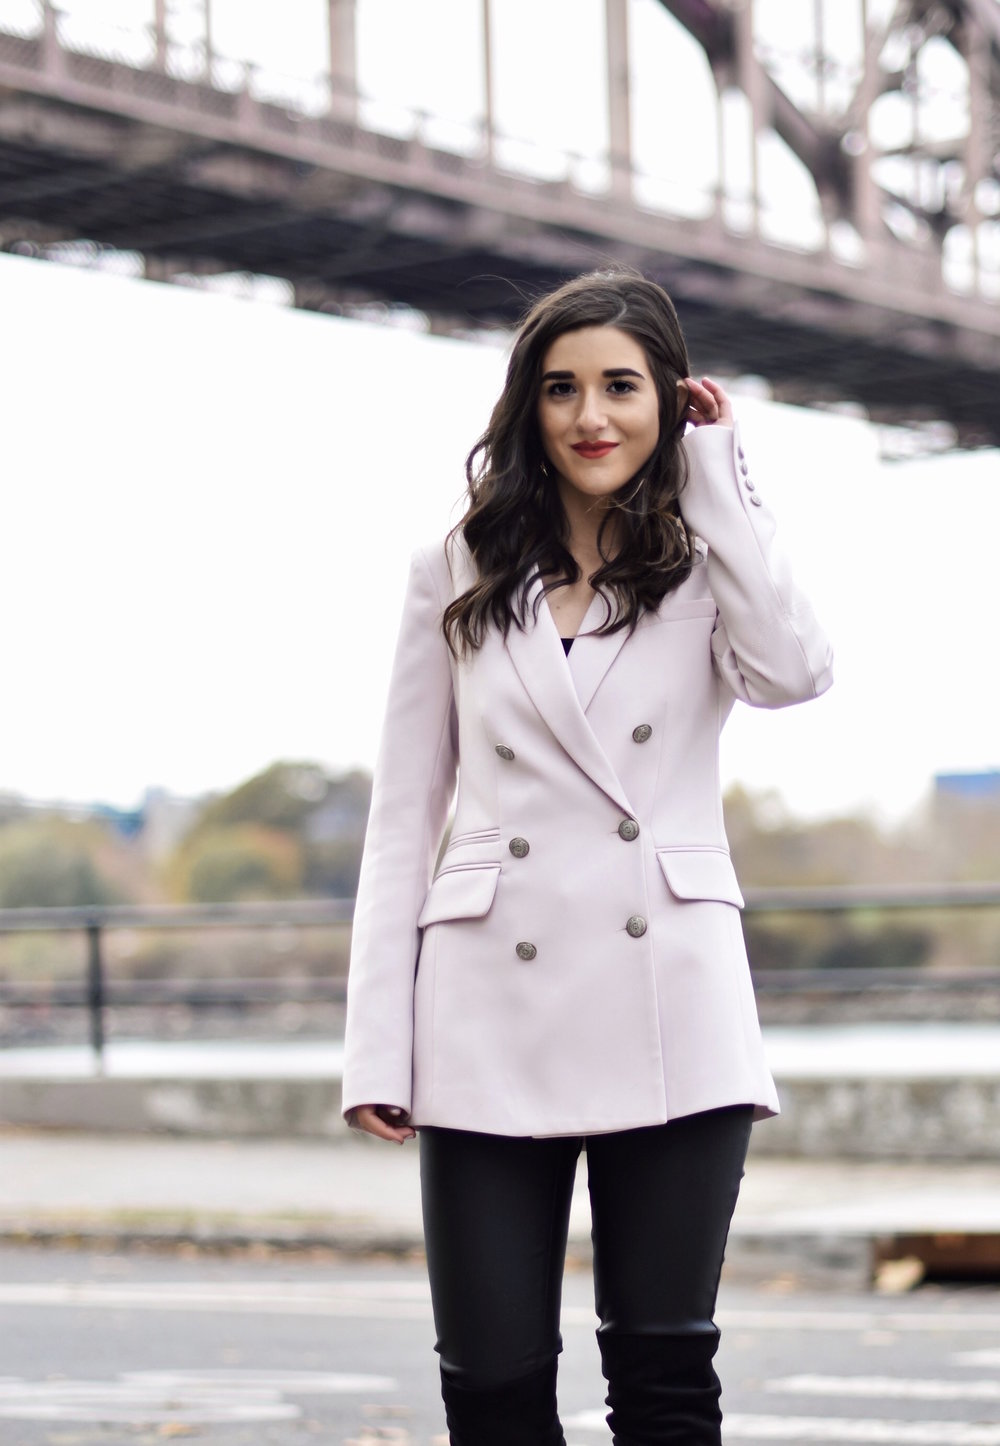 Why Some Bloggers Beg You To Like Their Photos Light Pink Blazer Leather Leggings Esther Santer Fashion Blog NYC Street Style Blogger Outfit OOTD Trendy Rachel Roy Black Over The Knee Boot Girl Women Astoria Photoshoot Winter Fall Jacket Sale Shopping.jpg